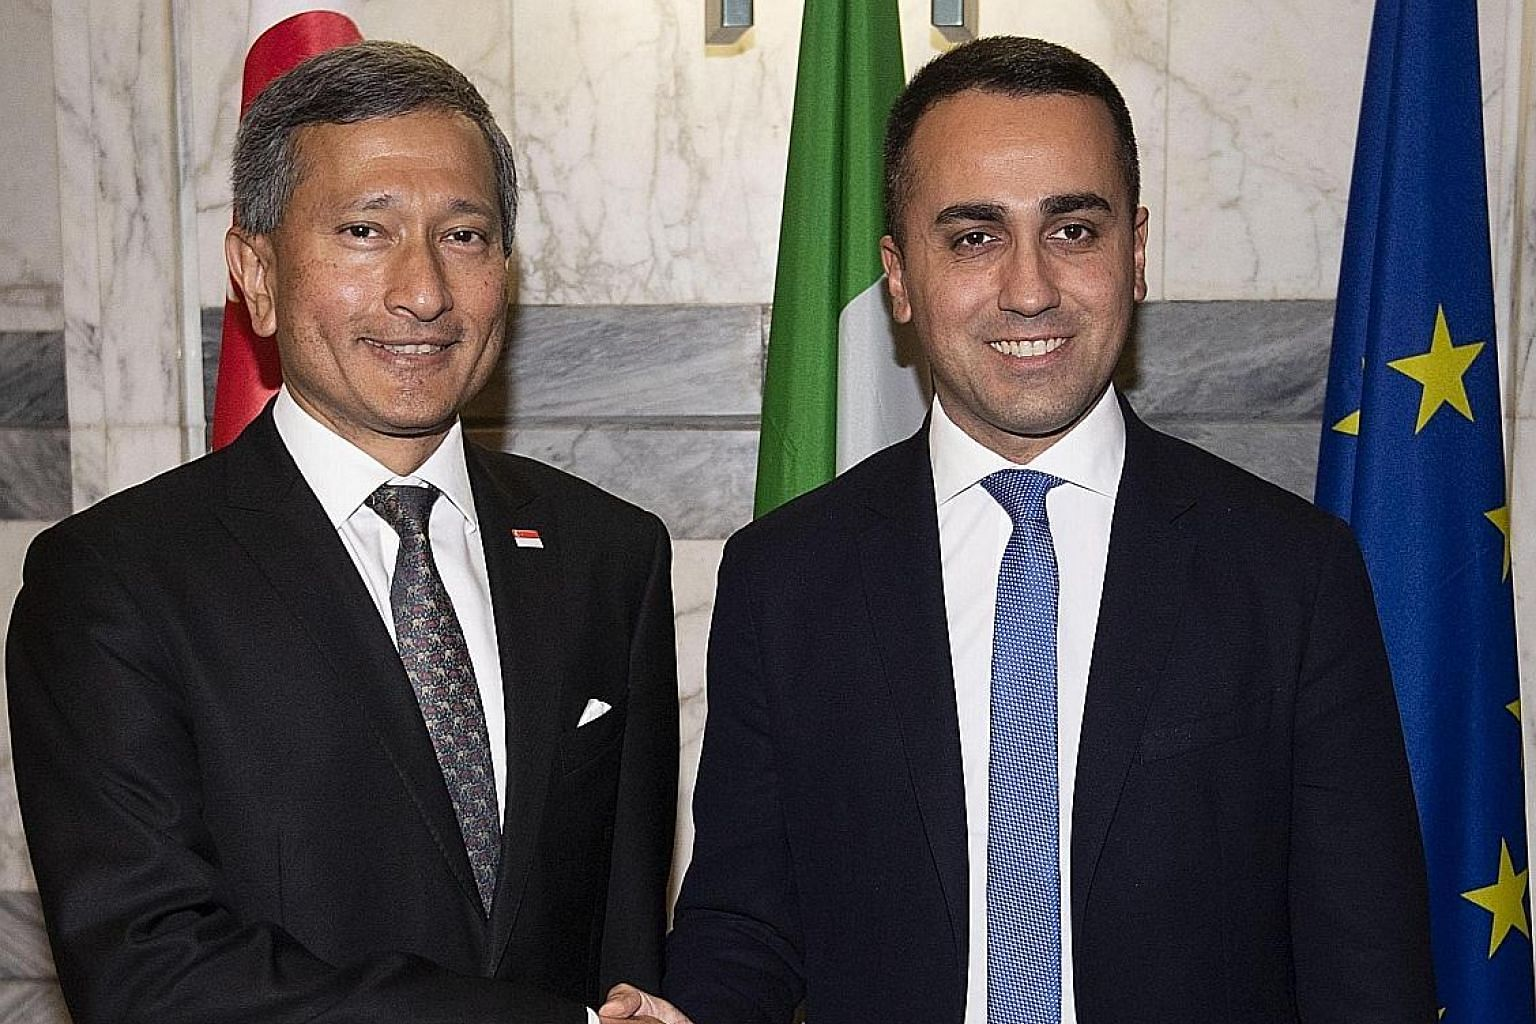 Foreign Minister Vivian Balakrishnan being welcomed by Italian Foreign Minister Luigi Di Maio for a meeting at Farnesina Palace in Rome on Thursday. Dr Balakrishnan also met Pope Francis during his official visit to Italy and Vatican City. PHOTO: EPA